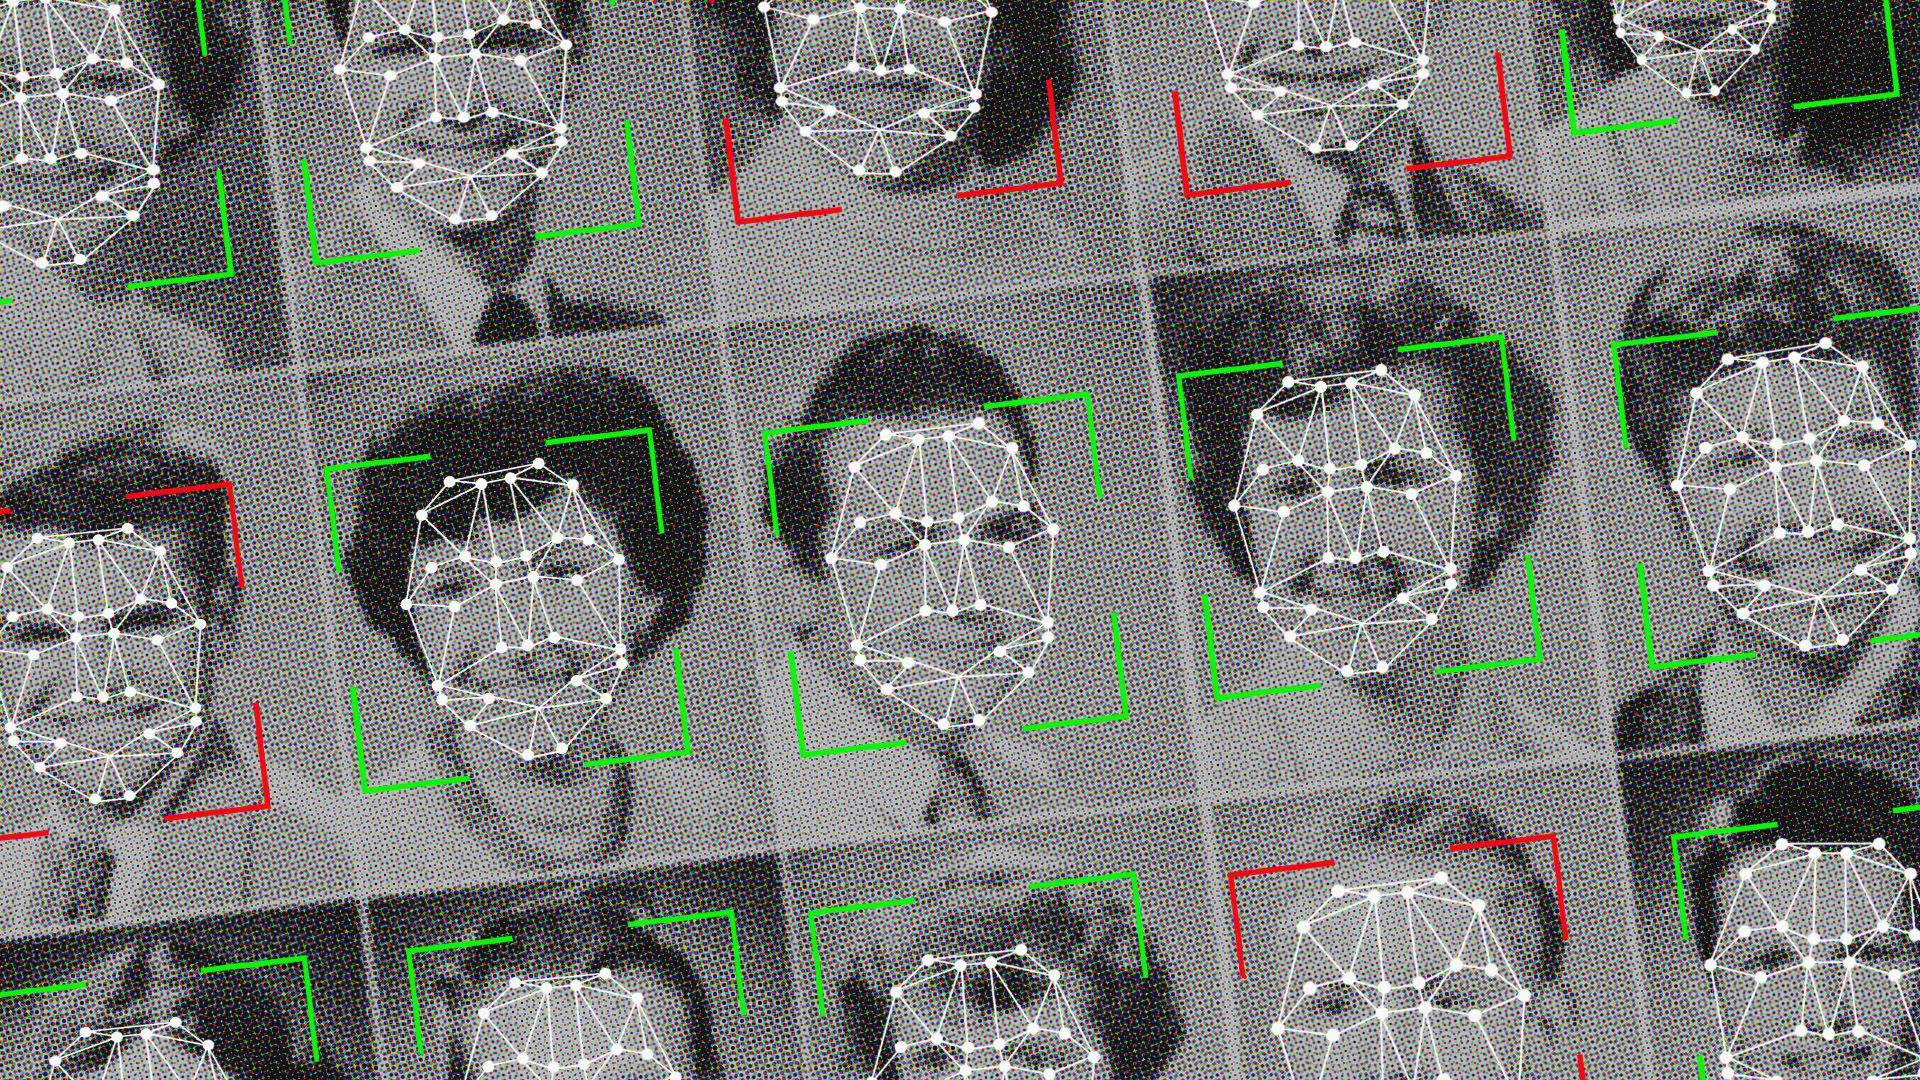 Facial recognition bring done on what appears to be a yearbook